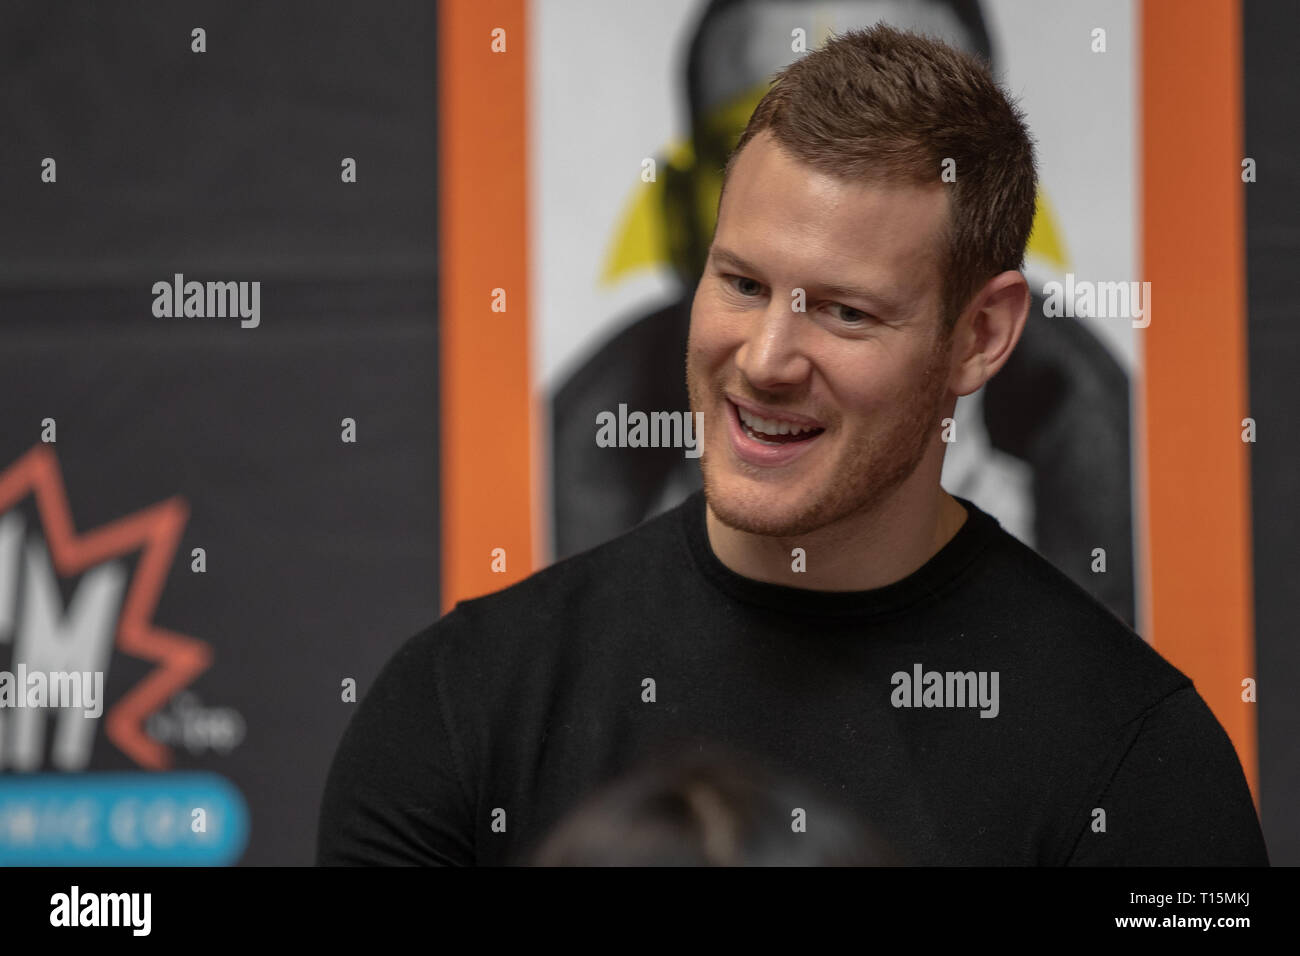 Birmingham, UK. Saturday 23 March 2019.Tom Hopper from The Umbrella Academy during an autograph session, on the 1st day of the MCM Comic Con Birmingham at the NEC  , © Jason Richardson / Alamy Live News - Stock Image